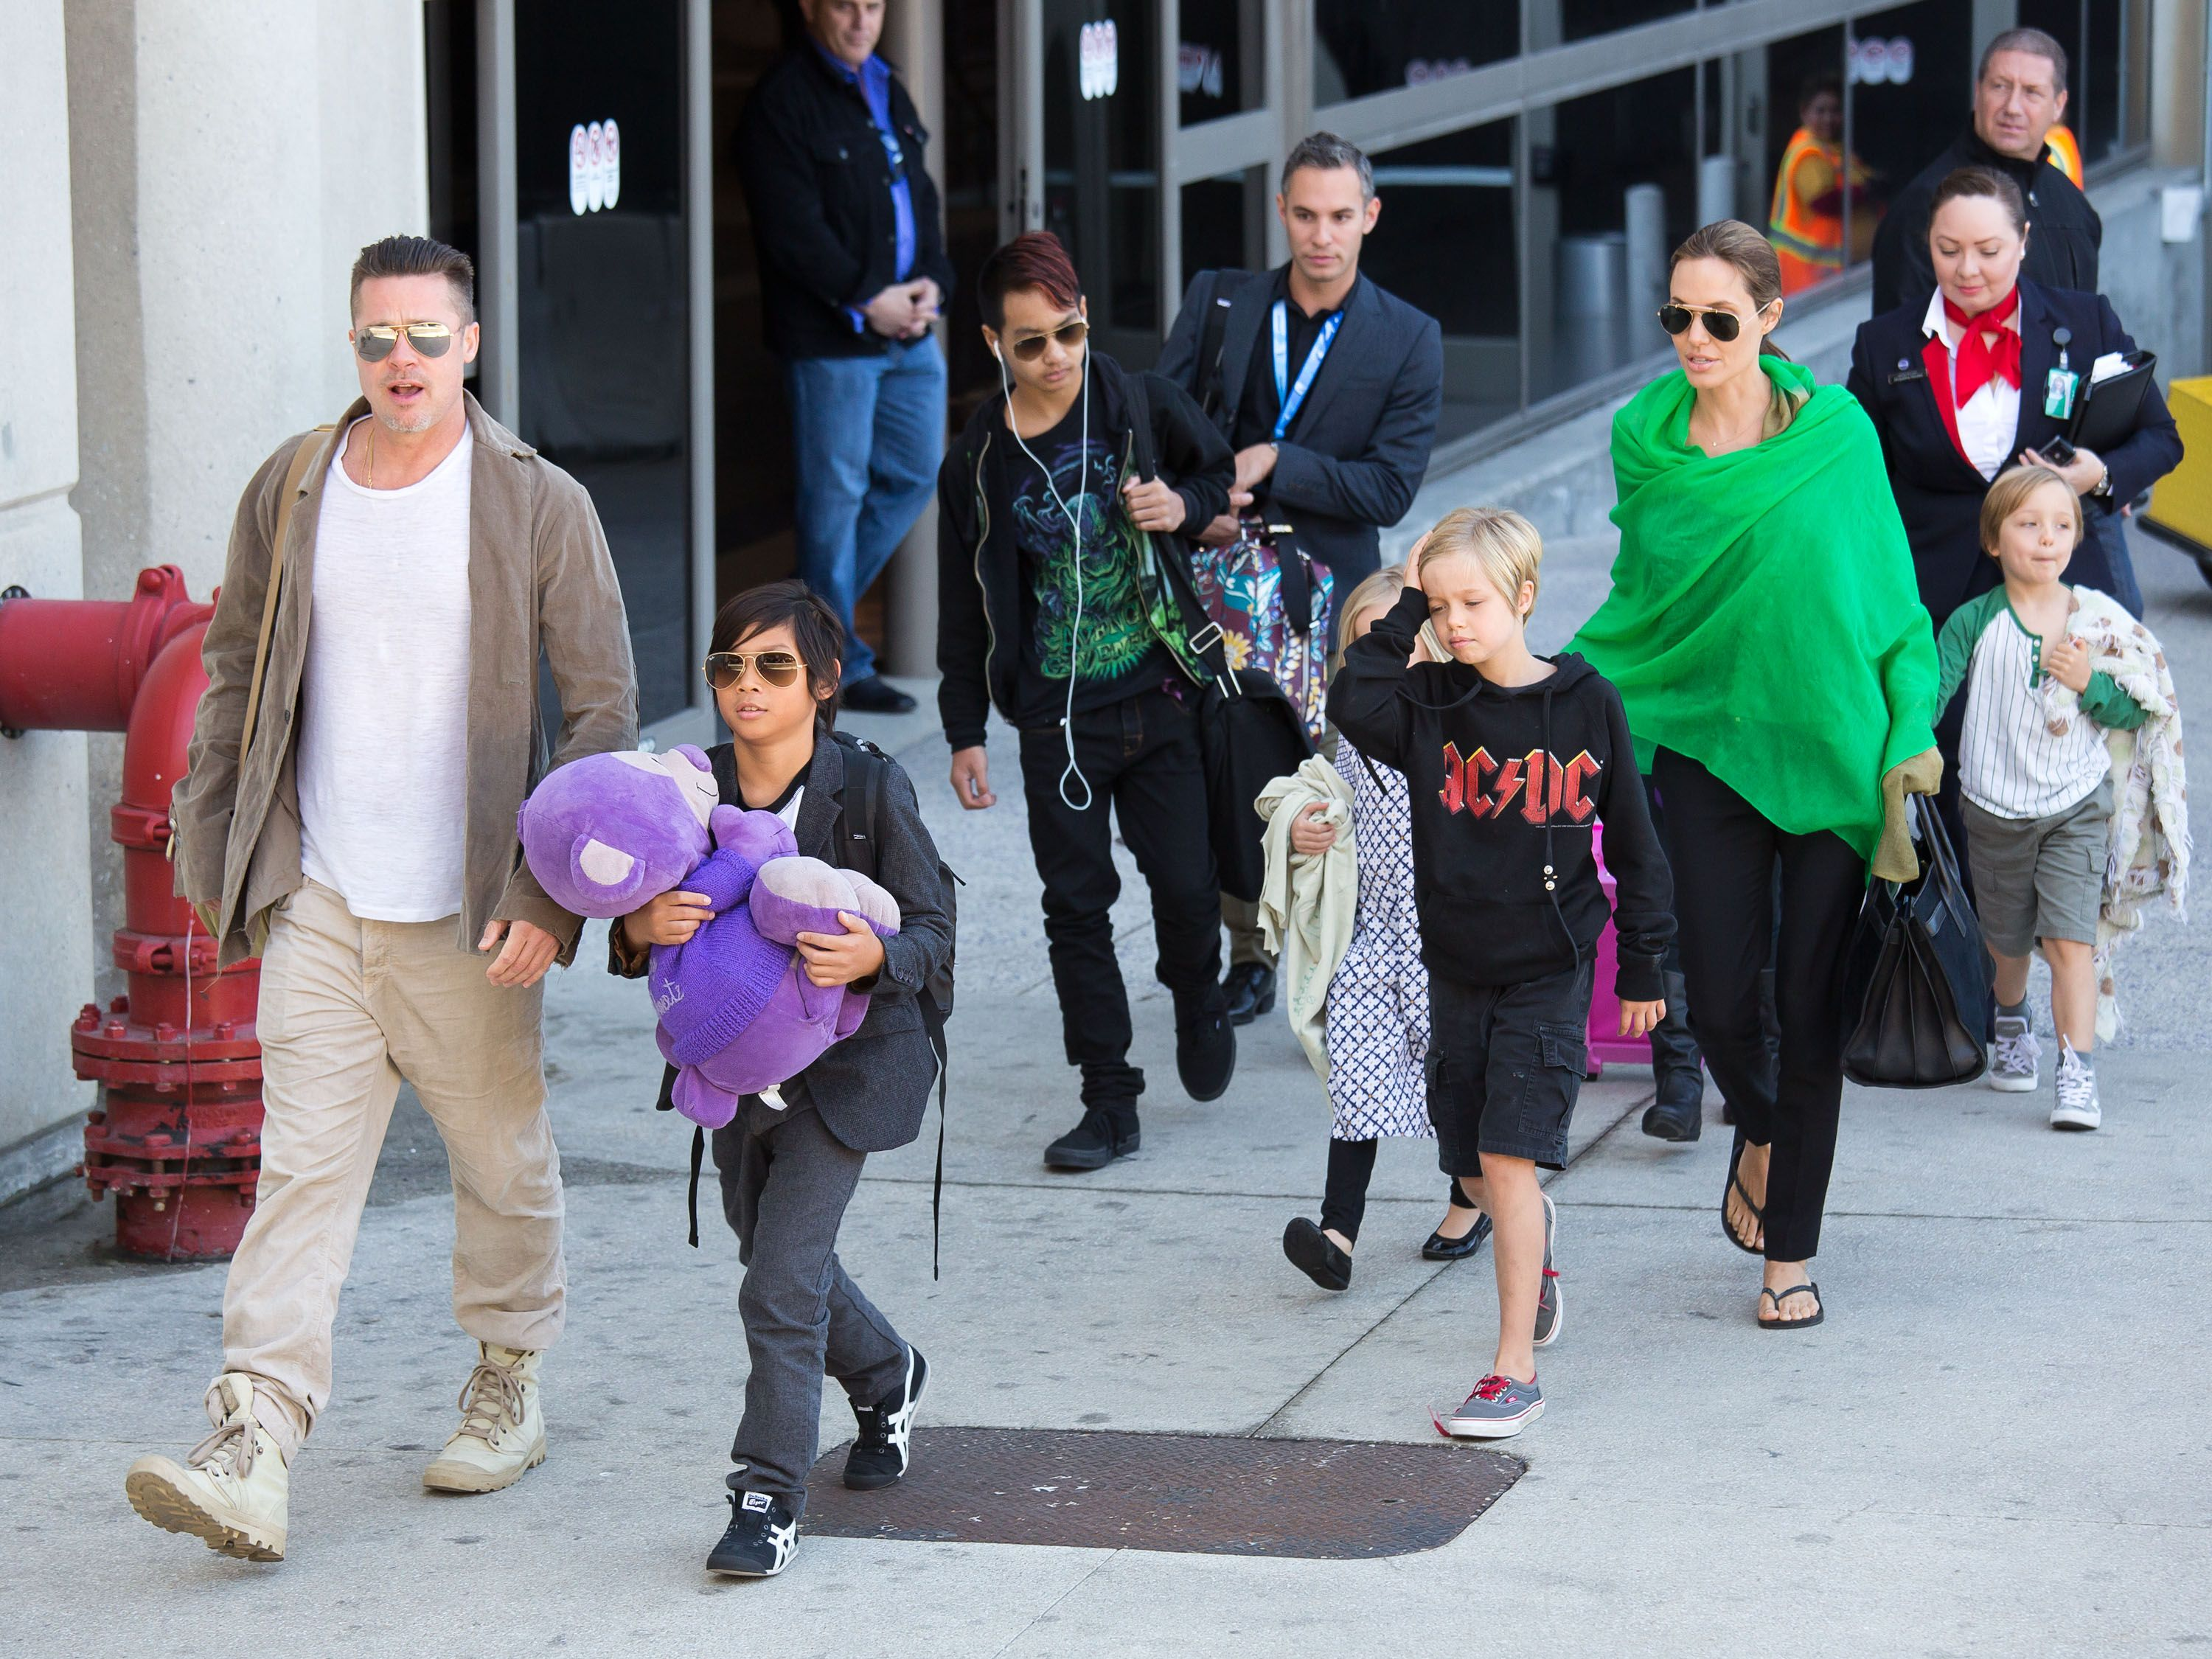 Brad Pitt and Angelina Jolie are seen after landing at Los Angeles International Airport with their children on February 05, 2014 | Photo: Getty Images